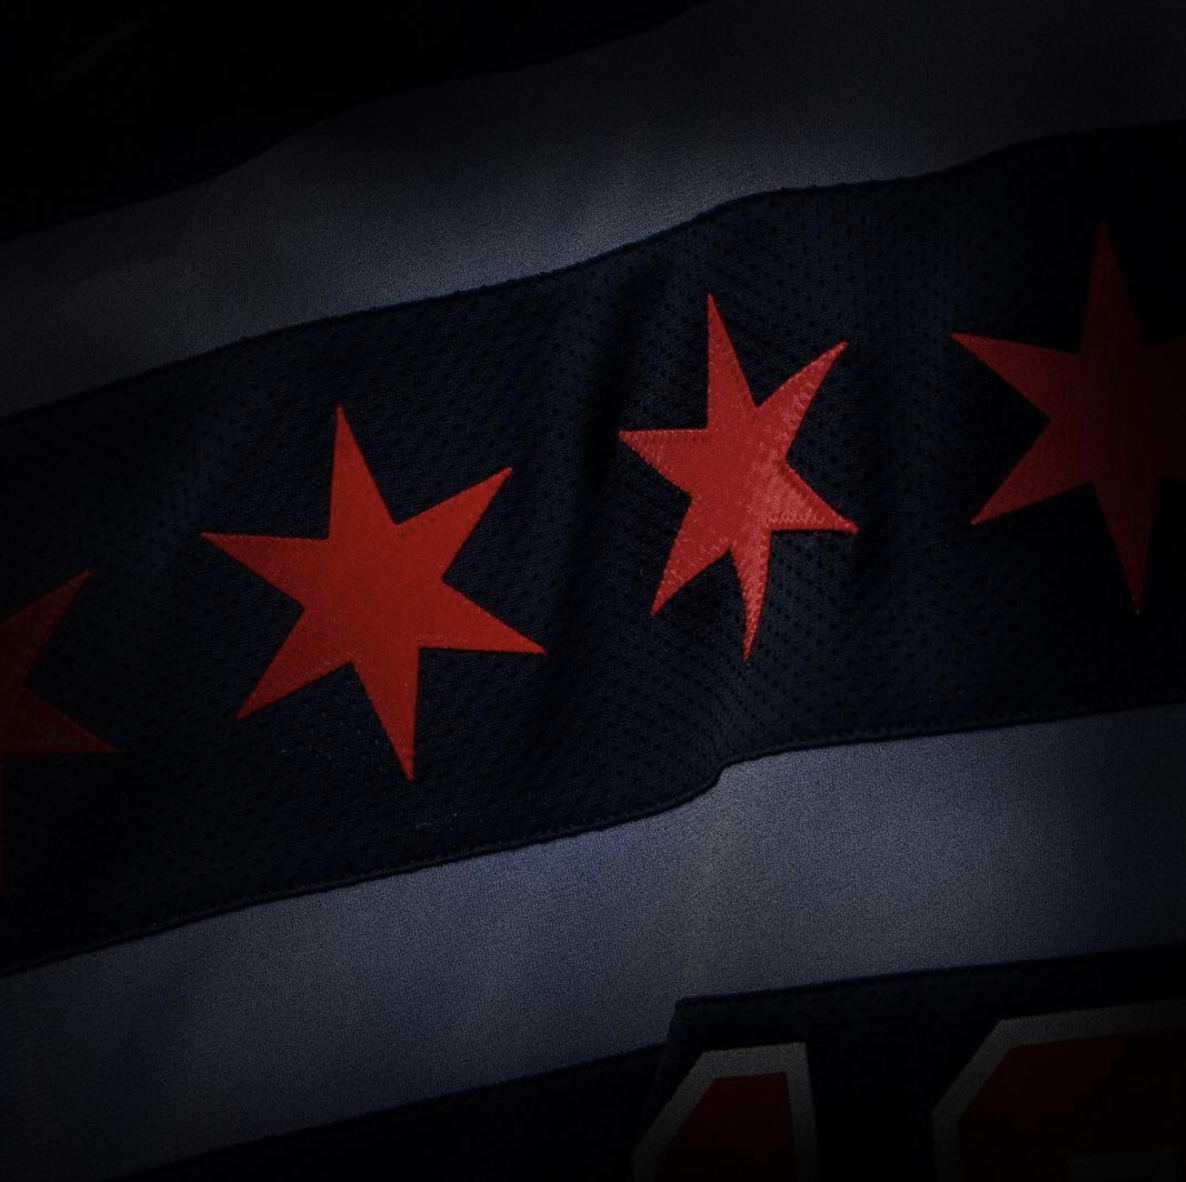 official photos 3757a ada12 Chicago Bulls Reveal New City Edition Jersey - WearTesters